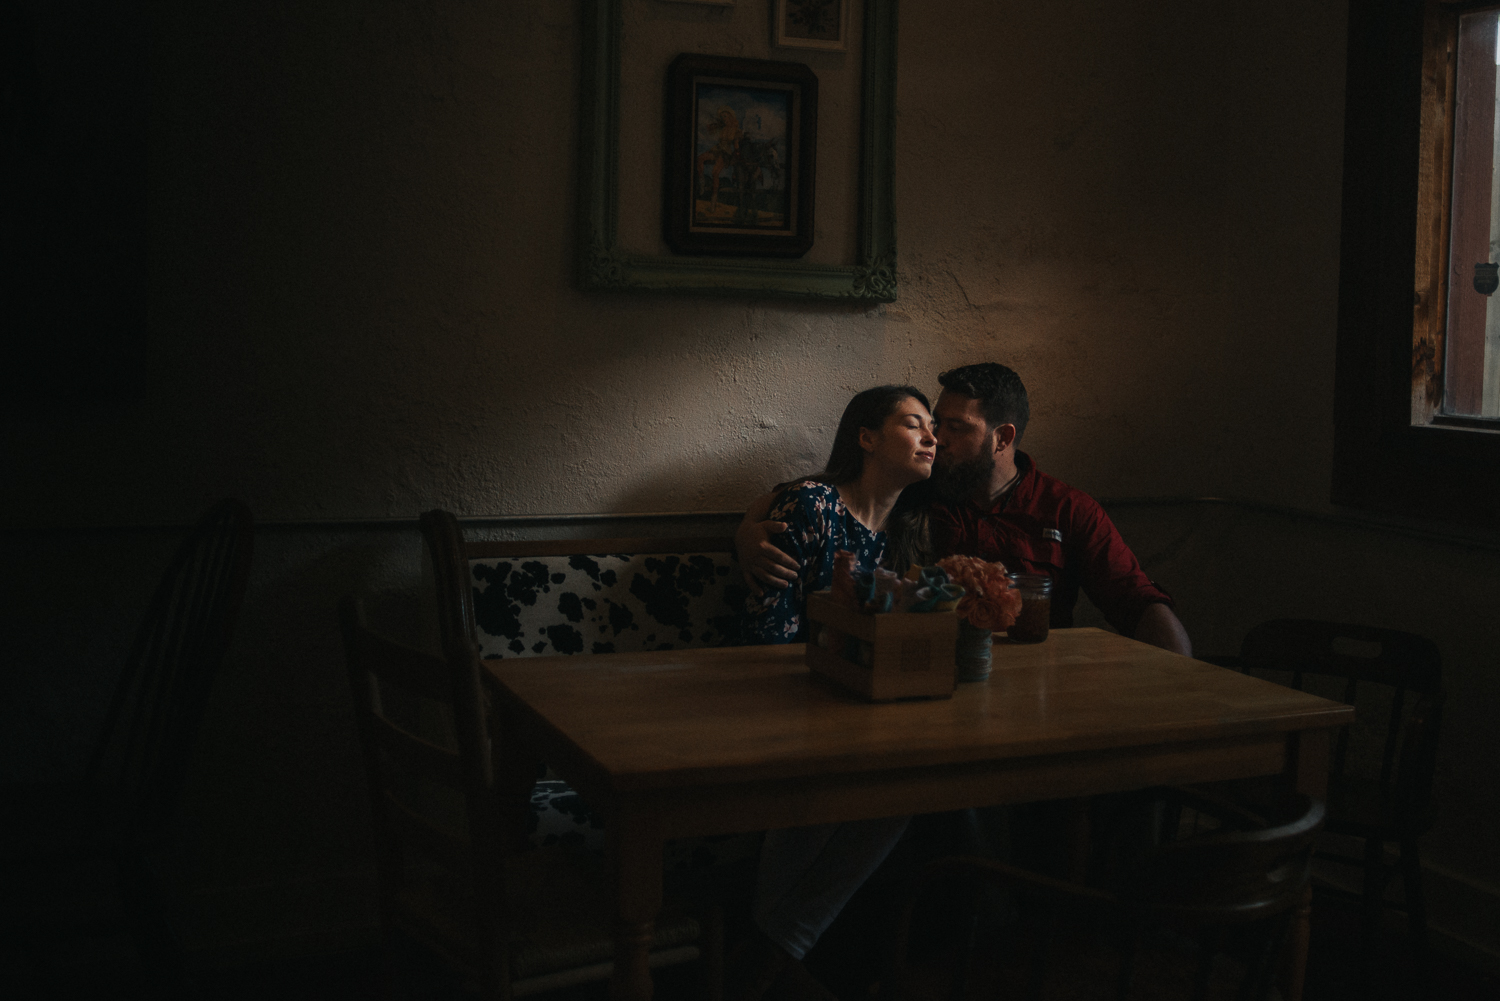 I'm photographing the raw, emotive feelings in your intimate space. -